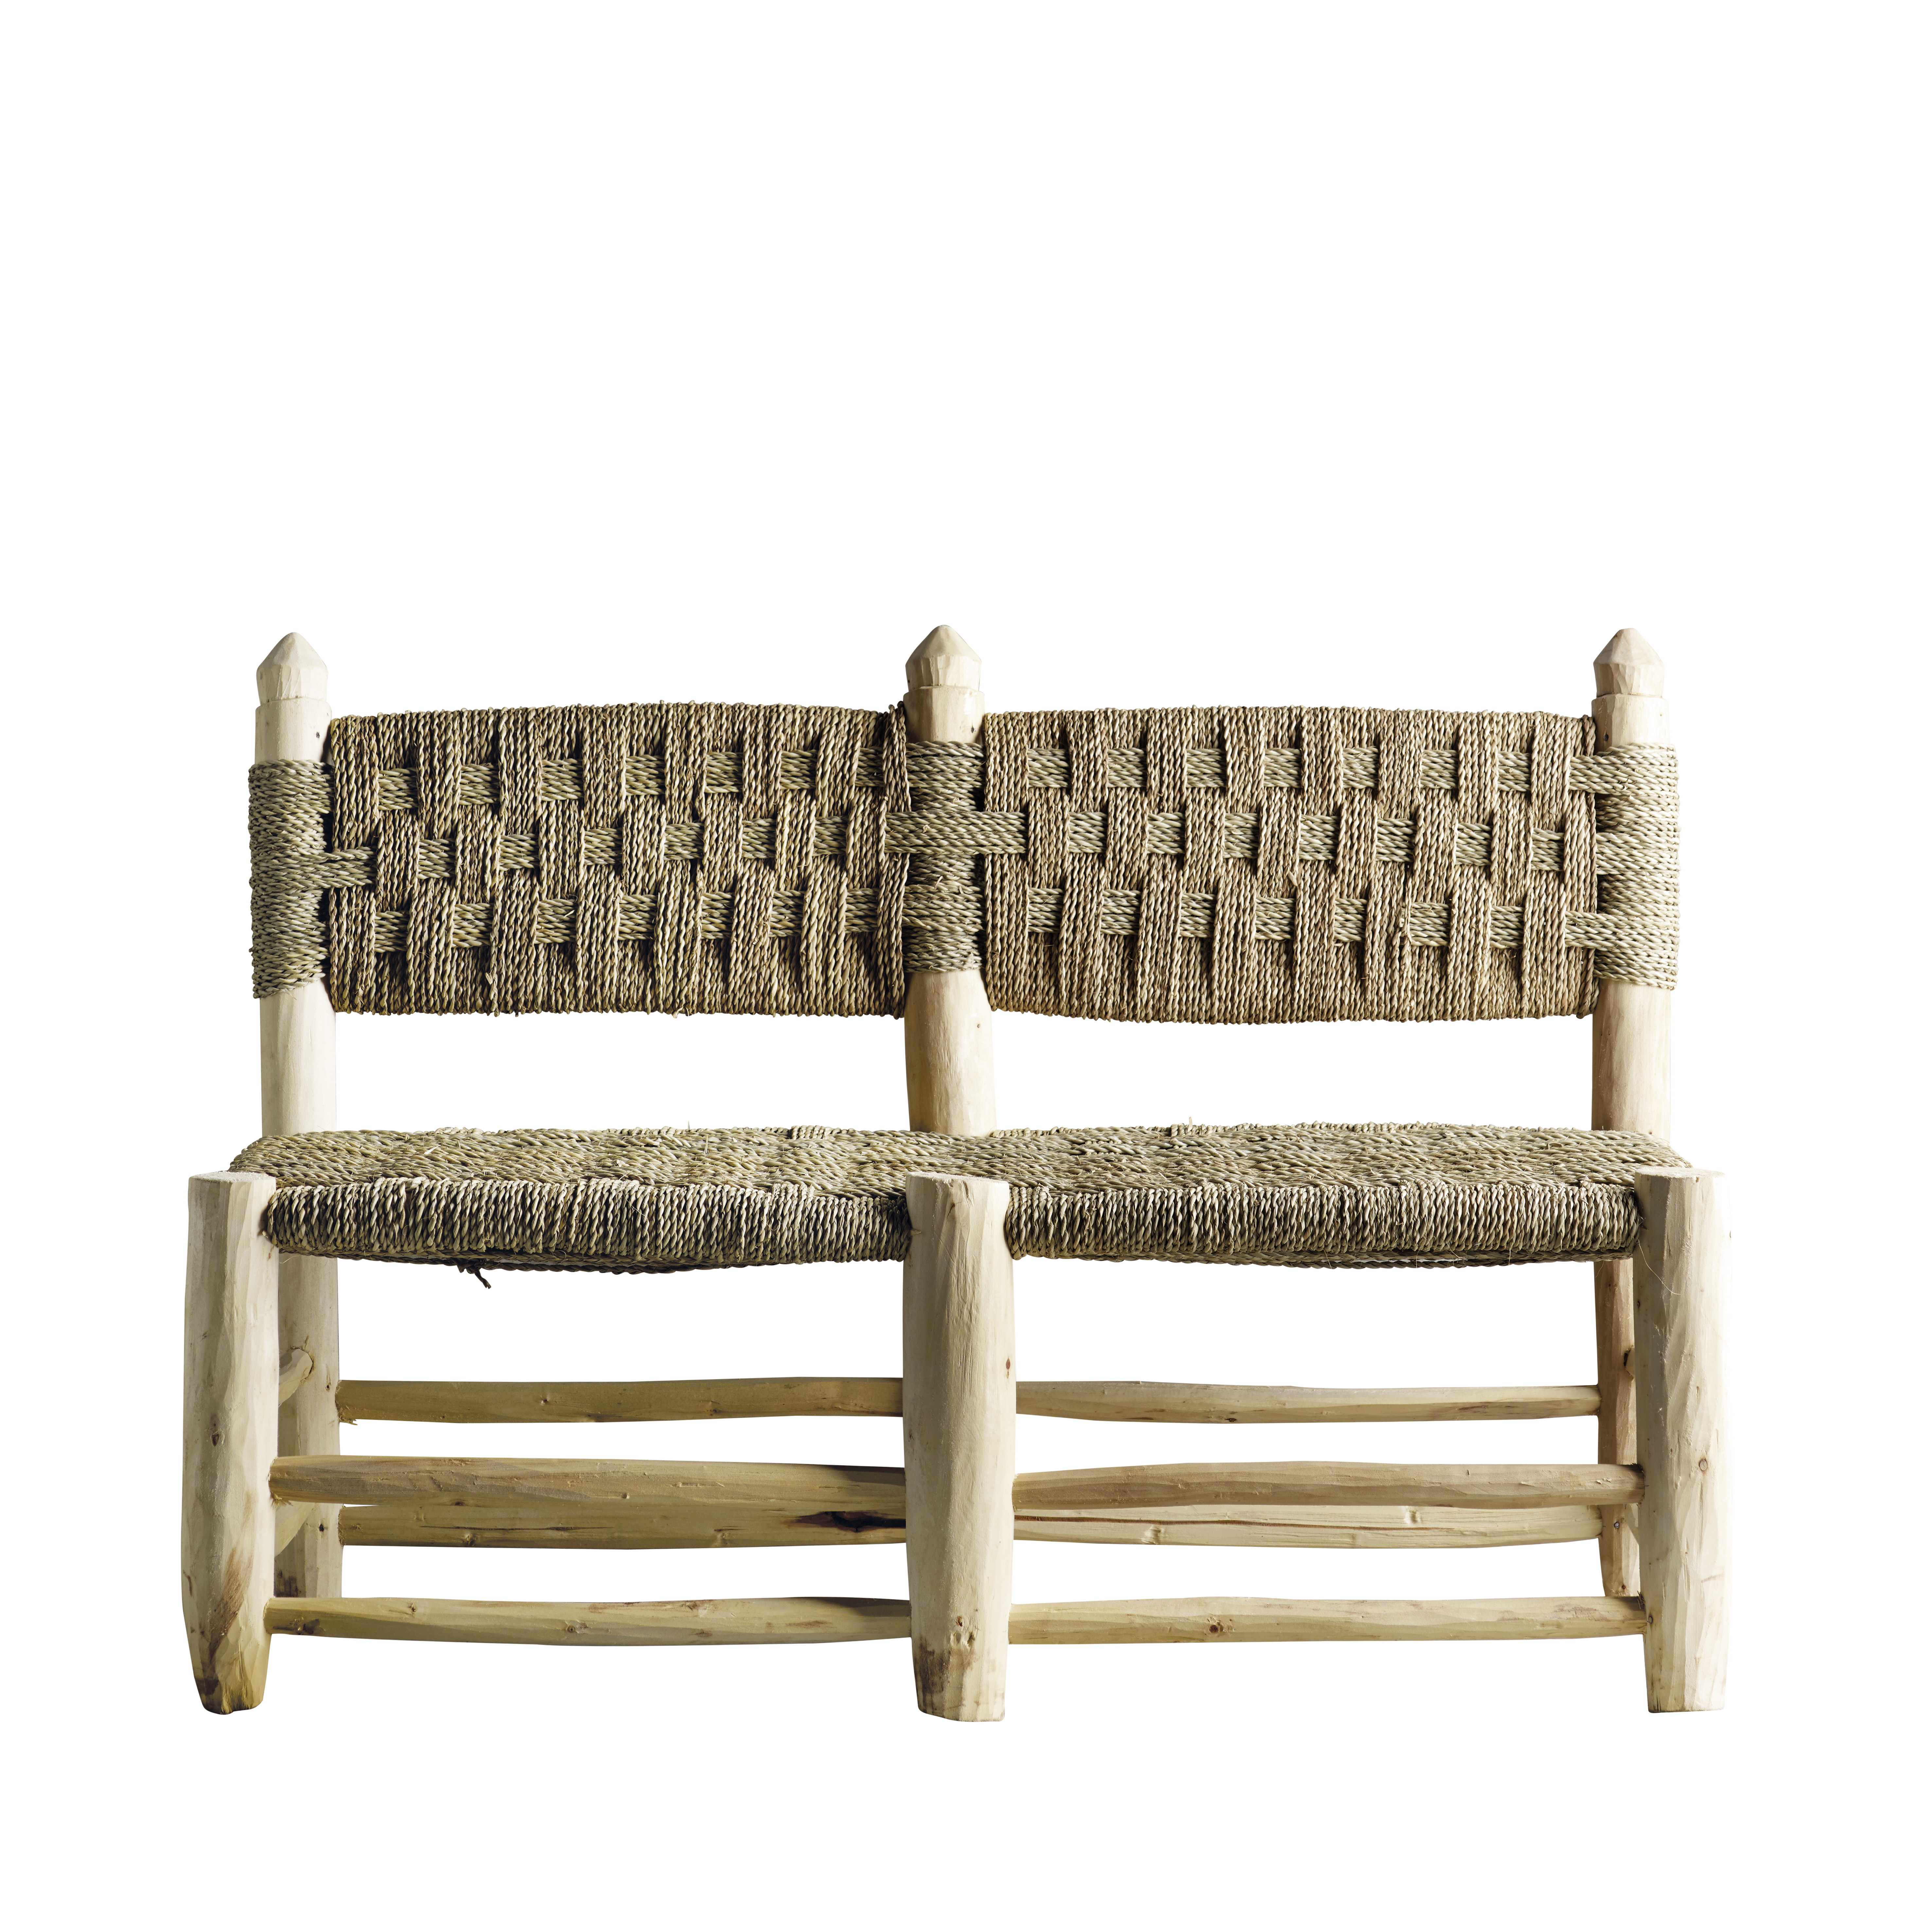 Handmade Bench In Wood With Seat Woven From Palm Leaves